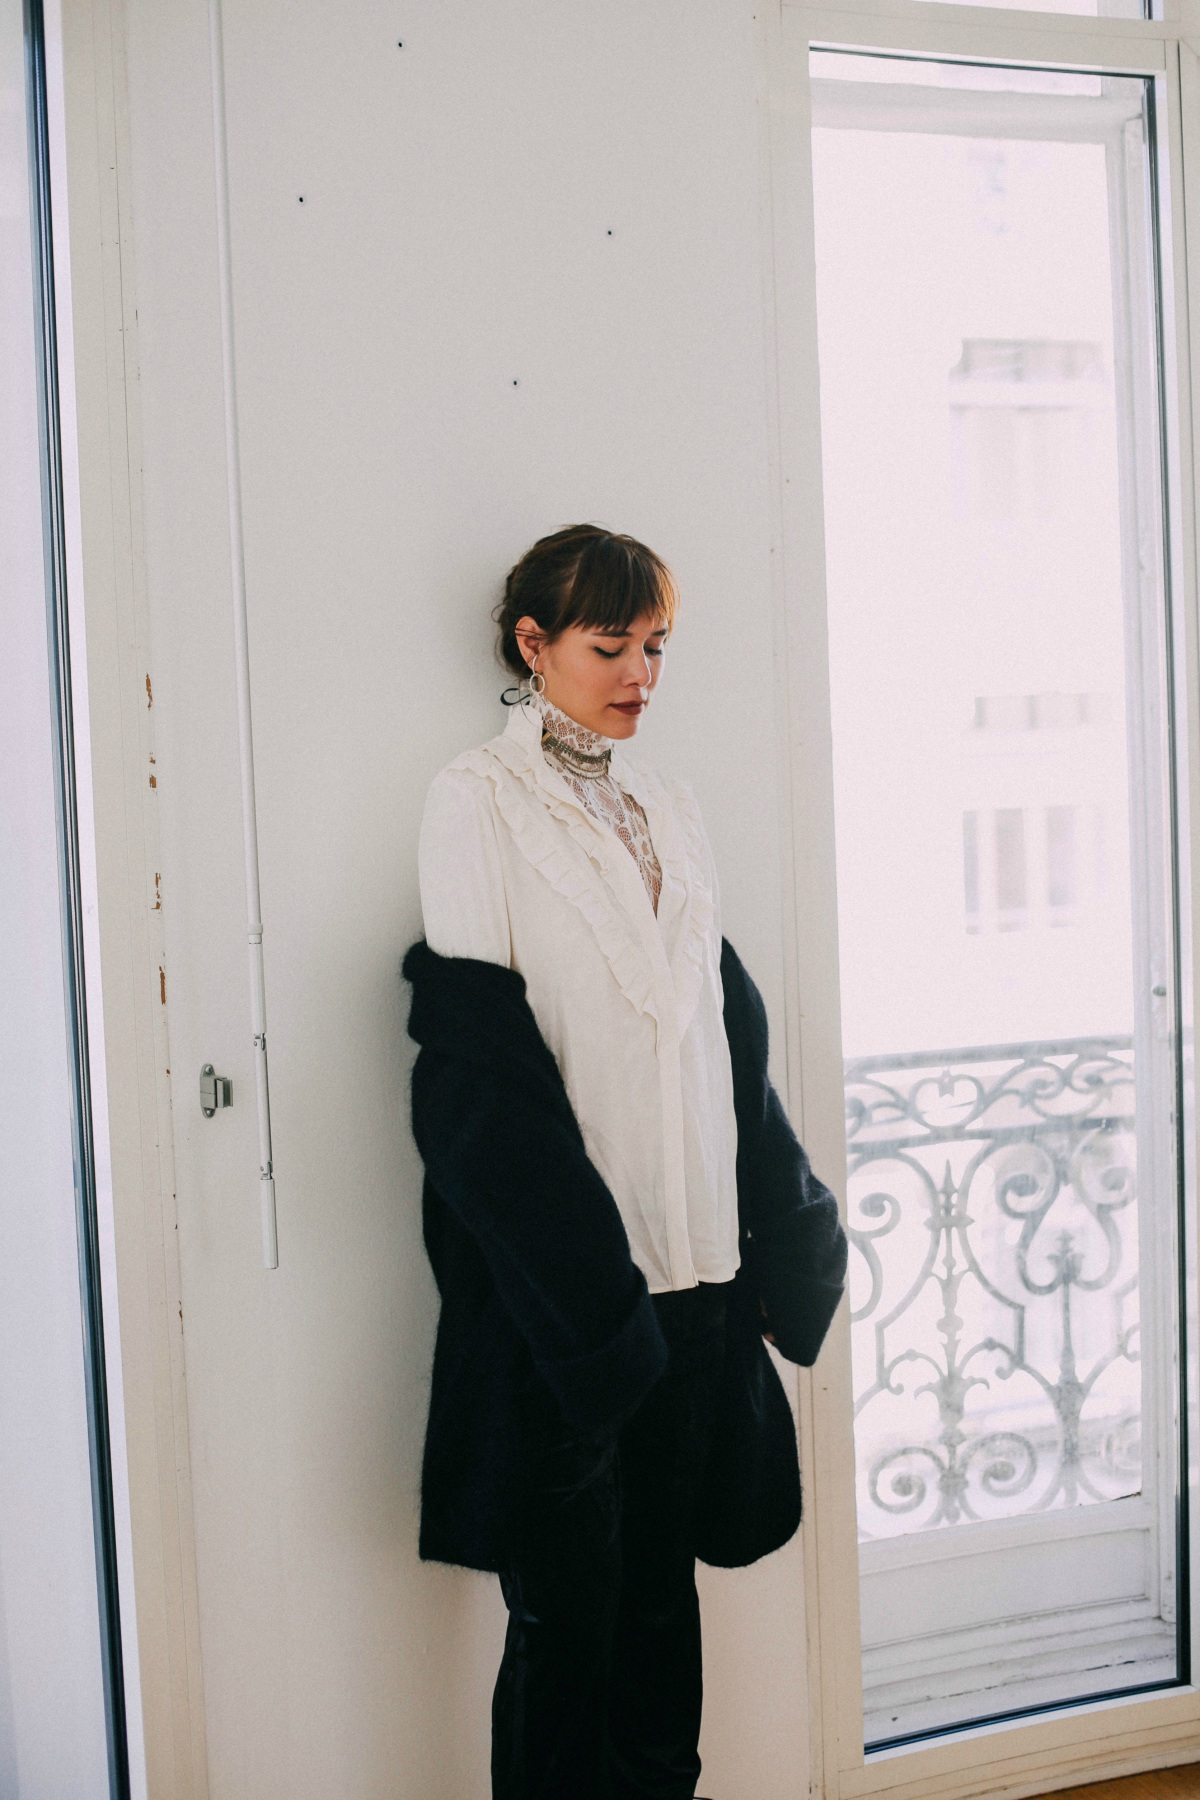 and-other-stories-fitting-natalie-suarez-paris-14-6883